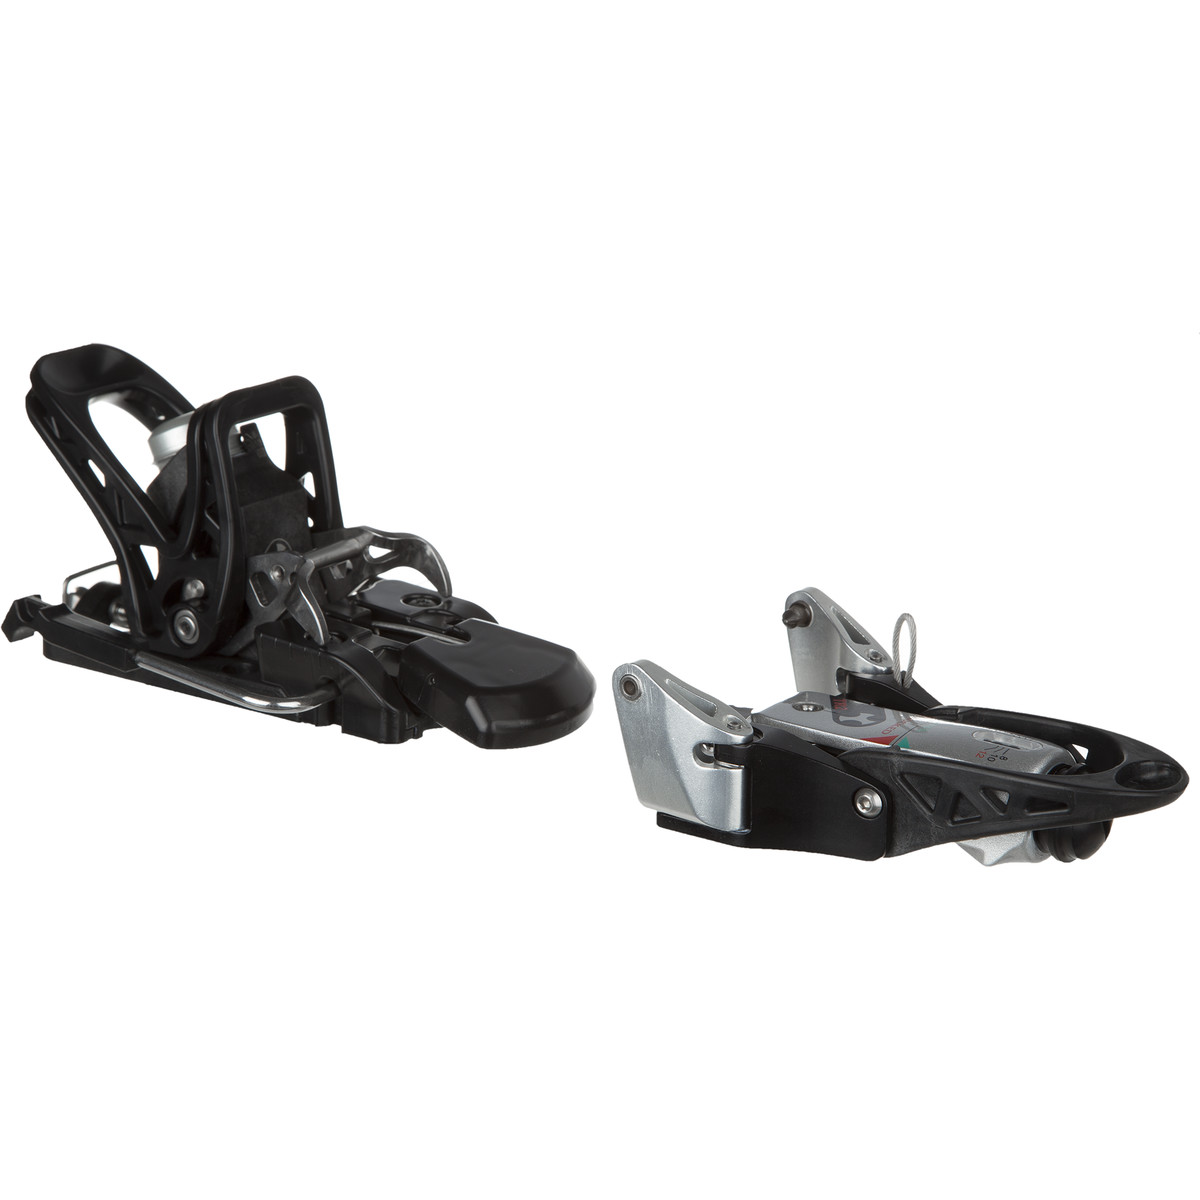 photo of a Ski Trab ski/snowshoe product